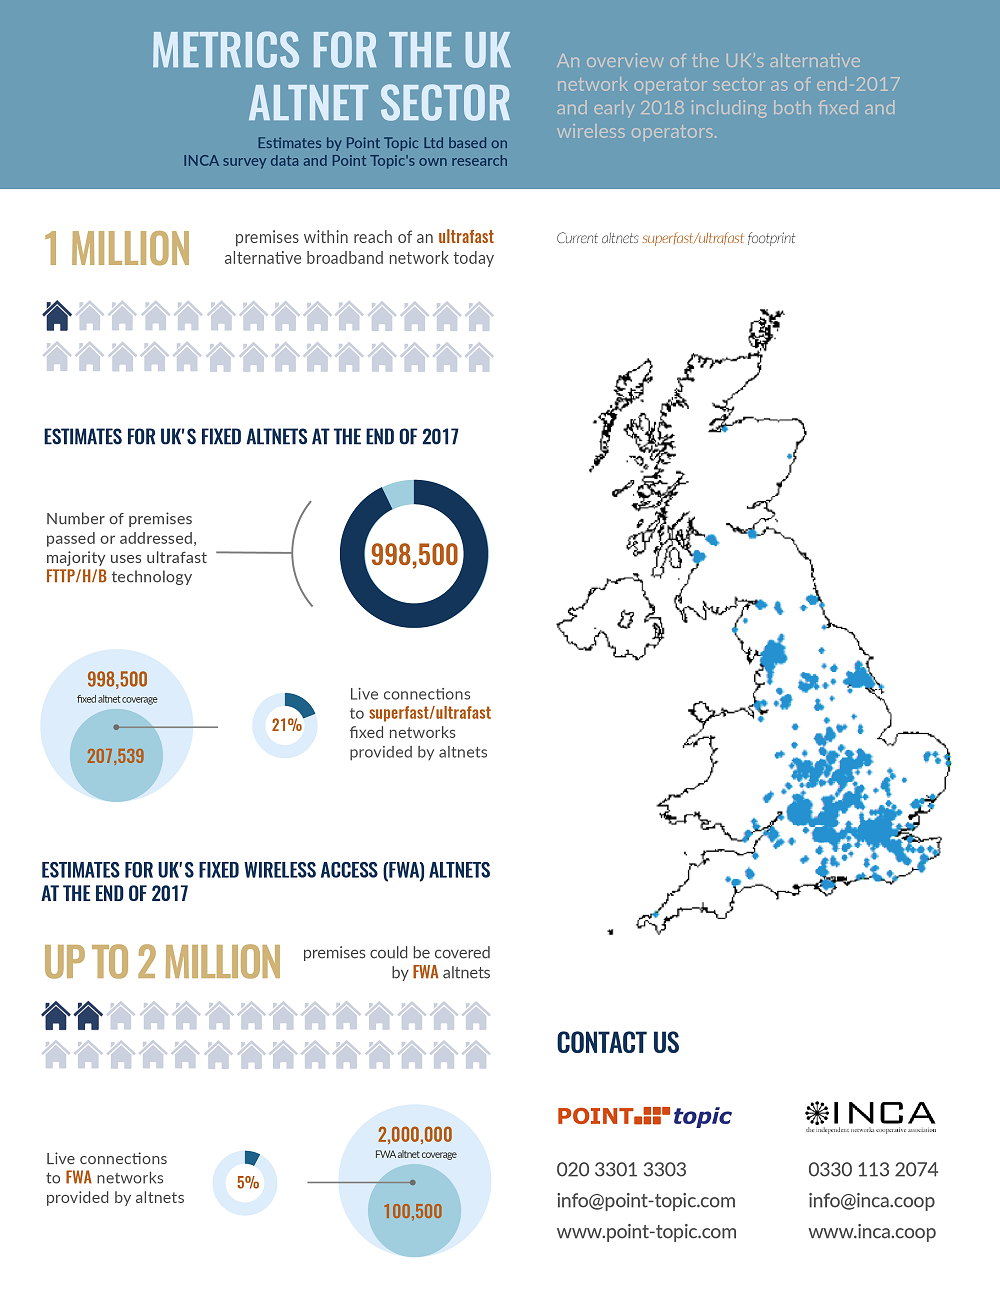 inca_altnet_broadband_uk_infographic